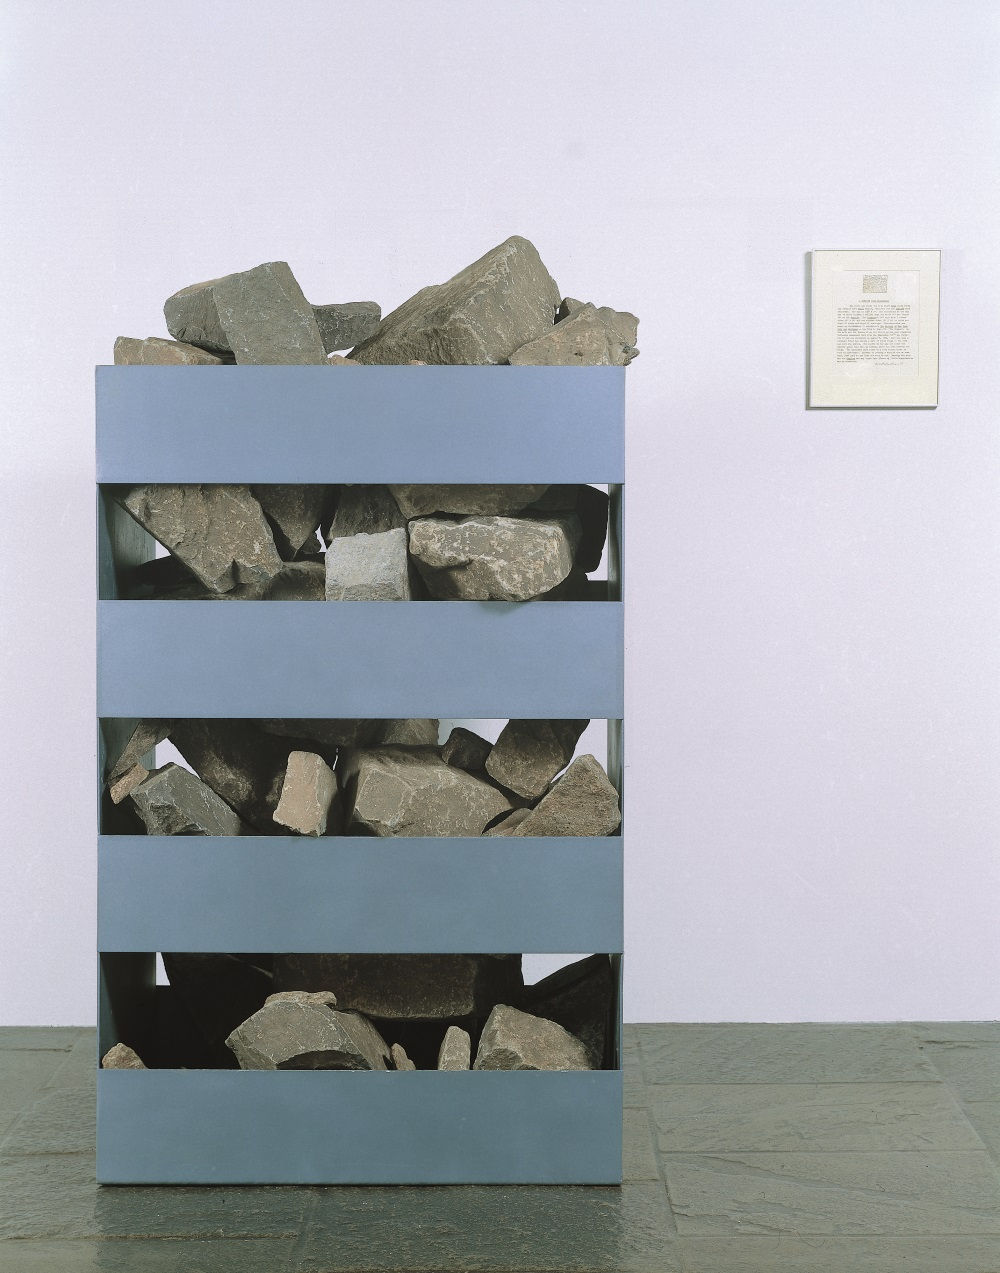 Robert Smithson, Non-site (Palisades-Edgewater, N.J.), 1968. Collection of the Whitney Museum of American Art, New York.